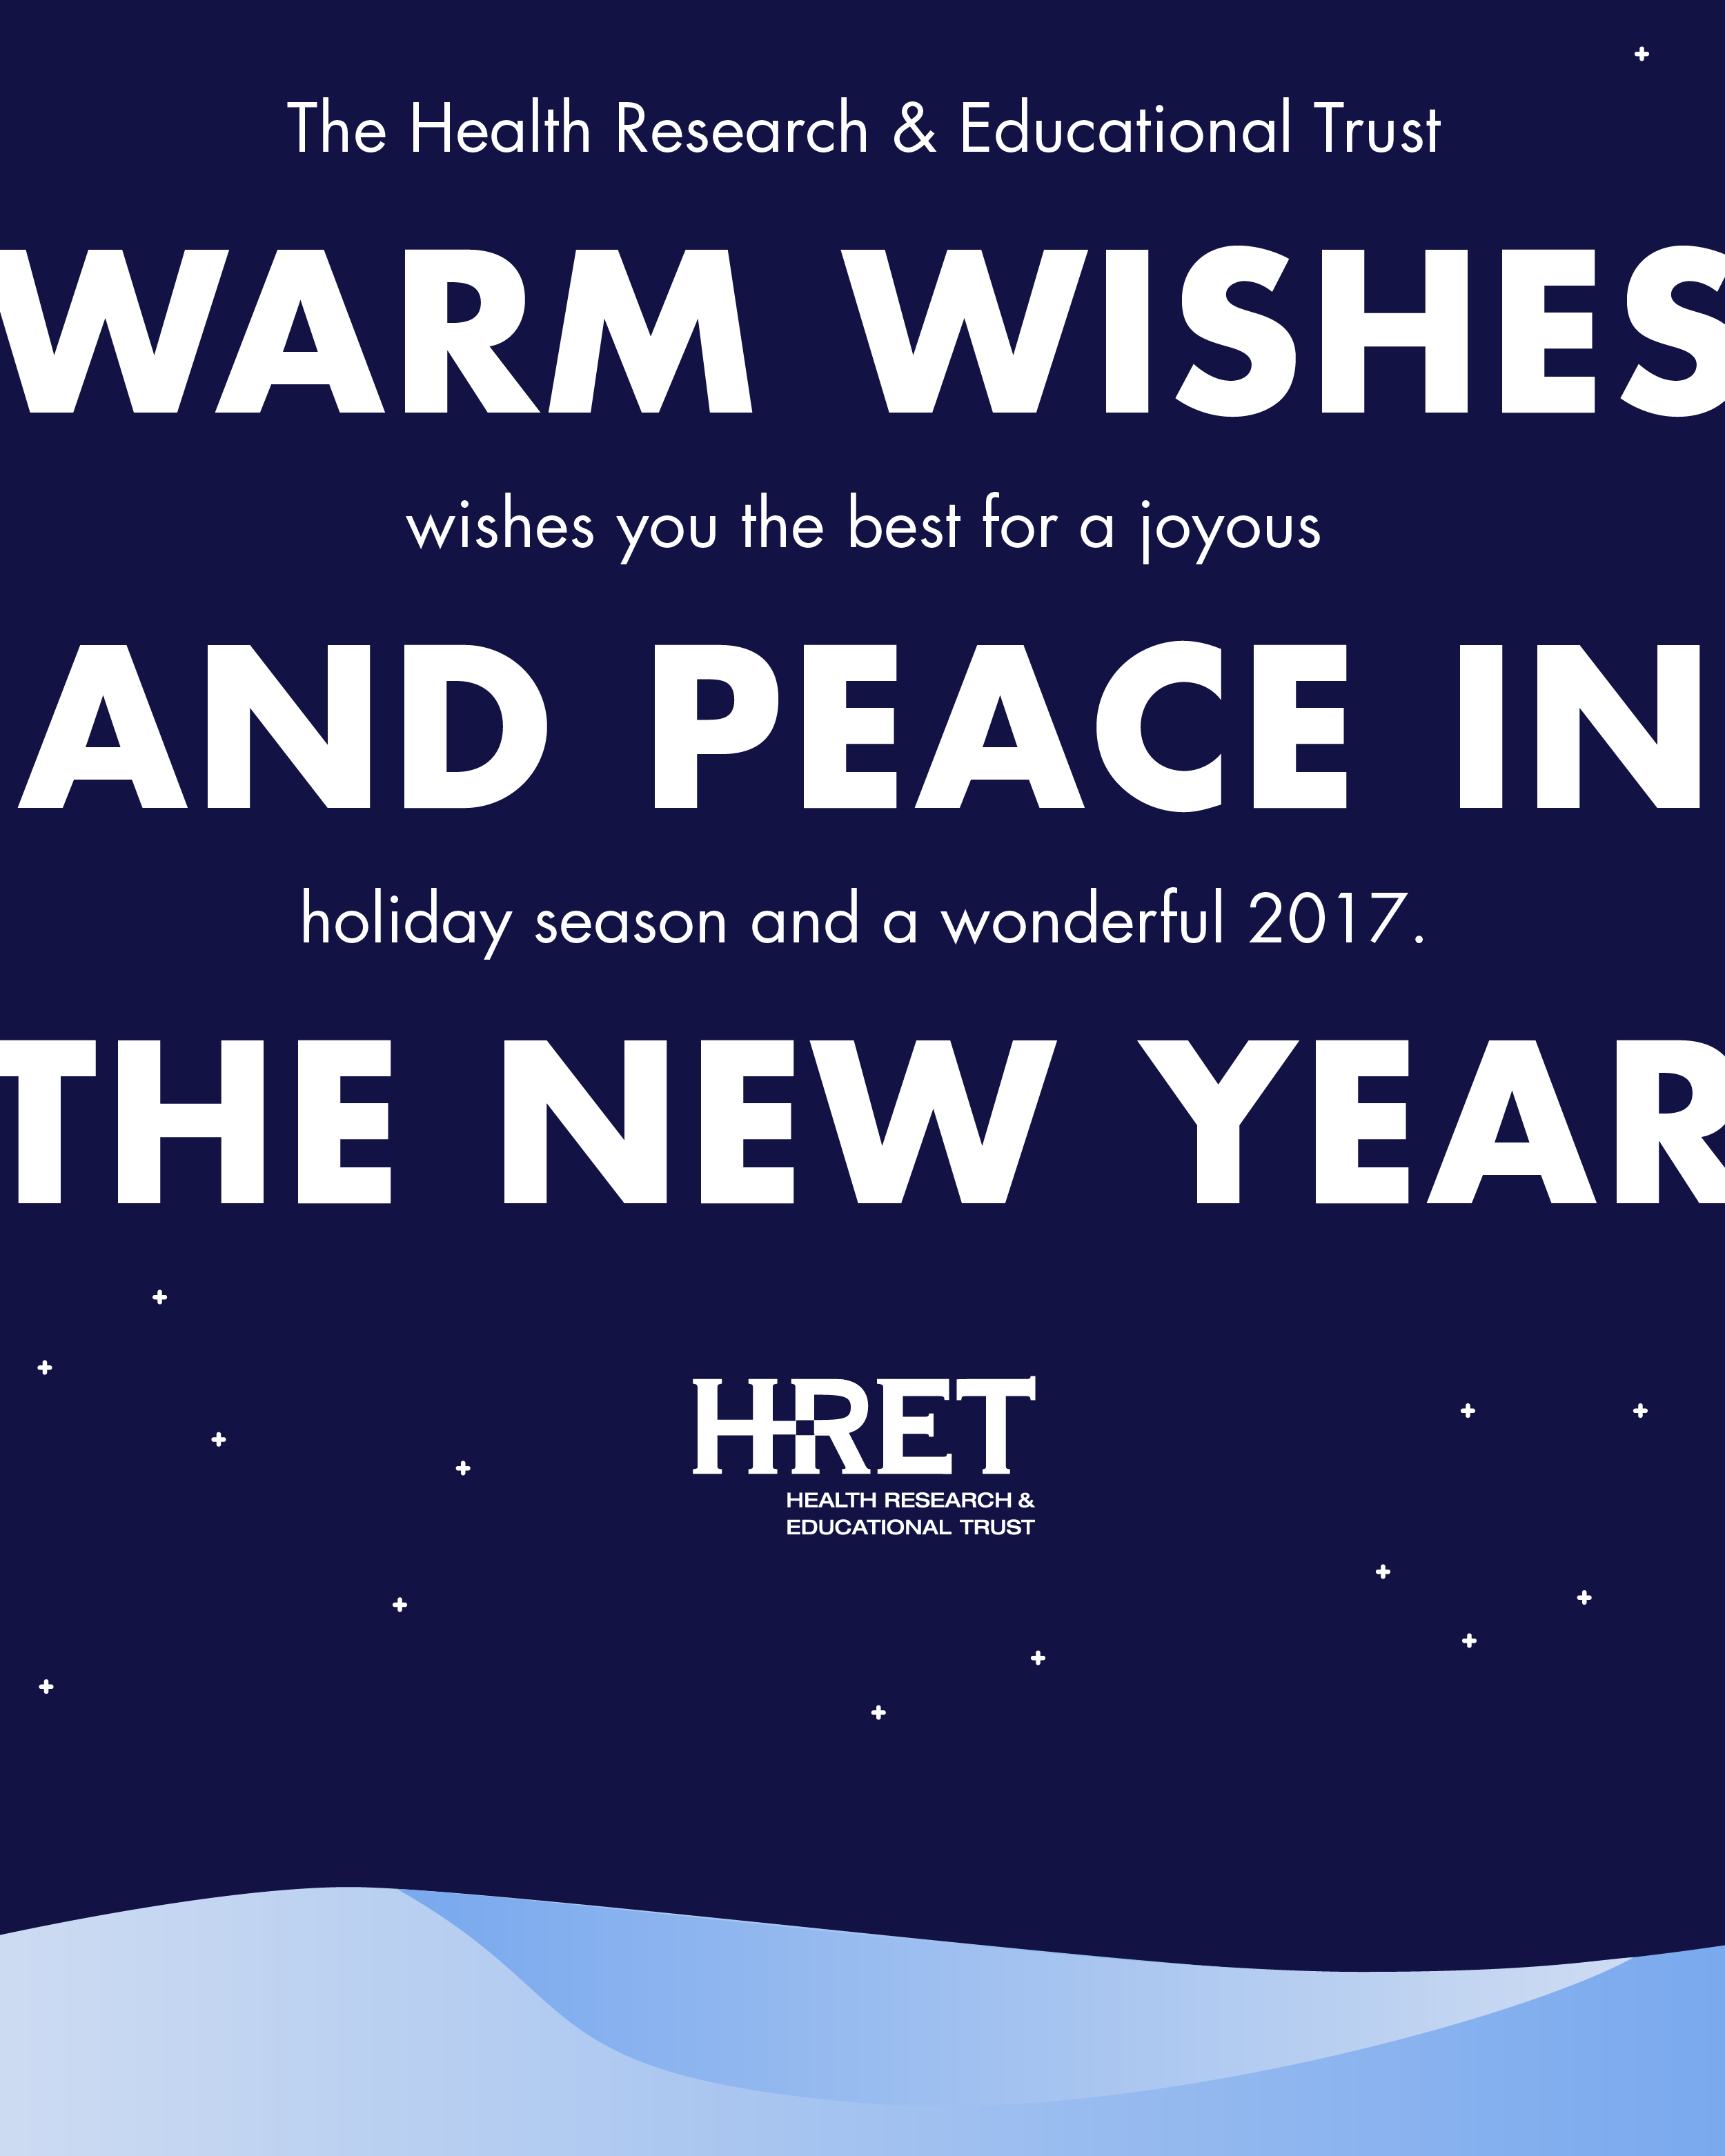 HRET_2016_holiday_1.png